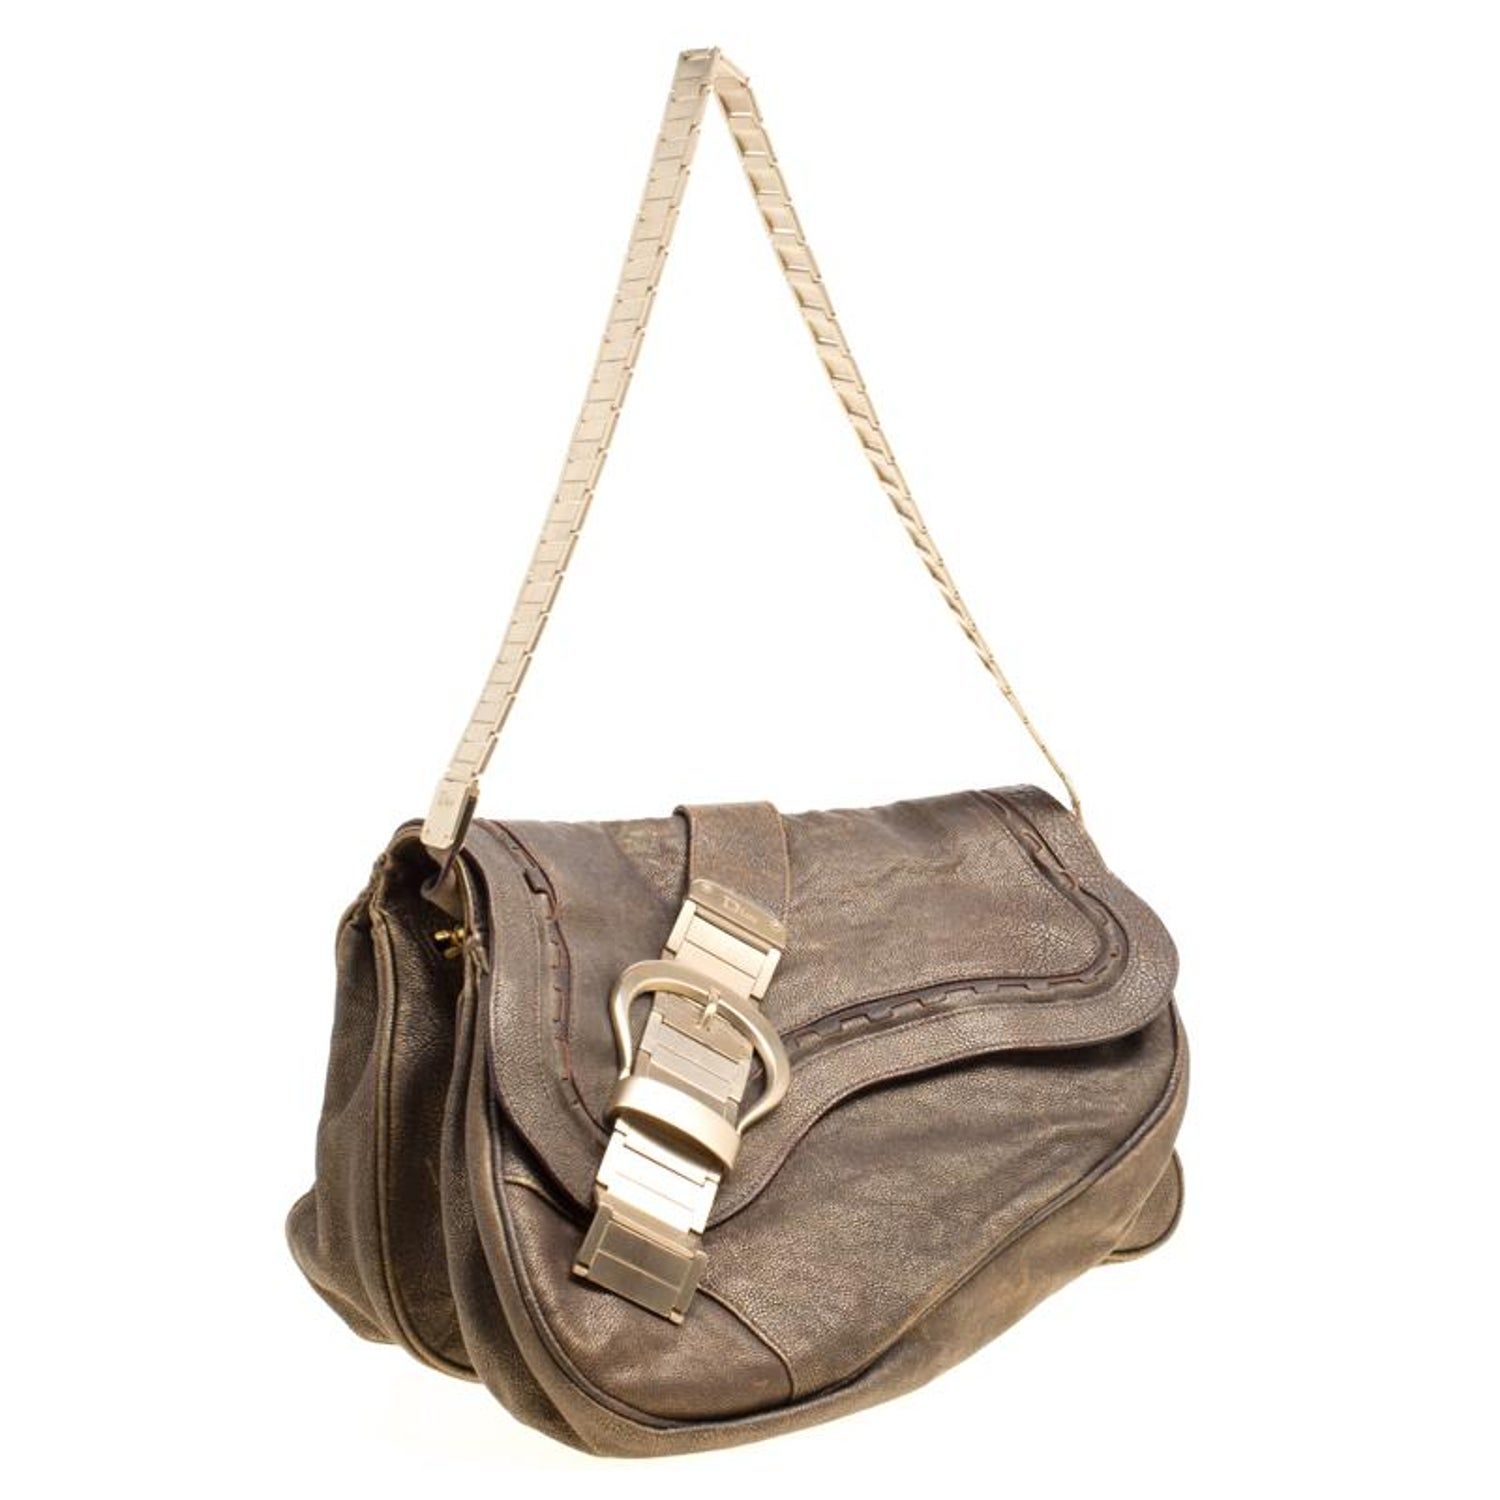 Dior Khaki Leather and Metal Limited Edition 148 Gaucho Double Saddle Bag  For Sale at 1stdibs 73ff2b918c1e1